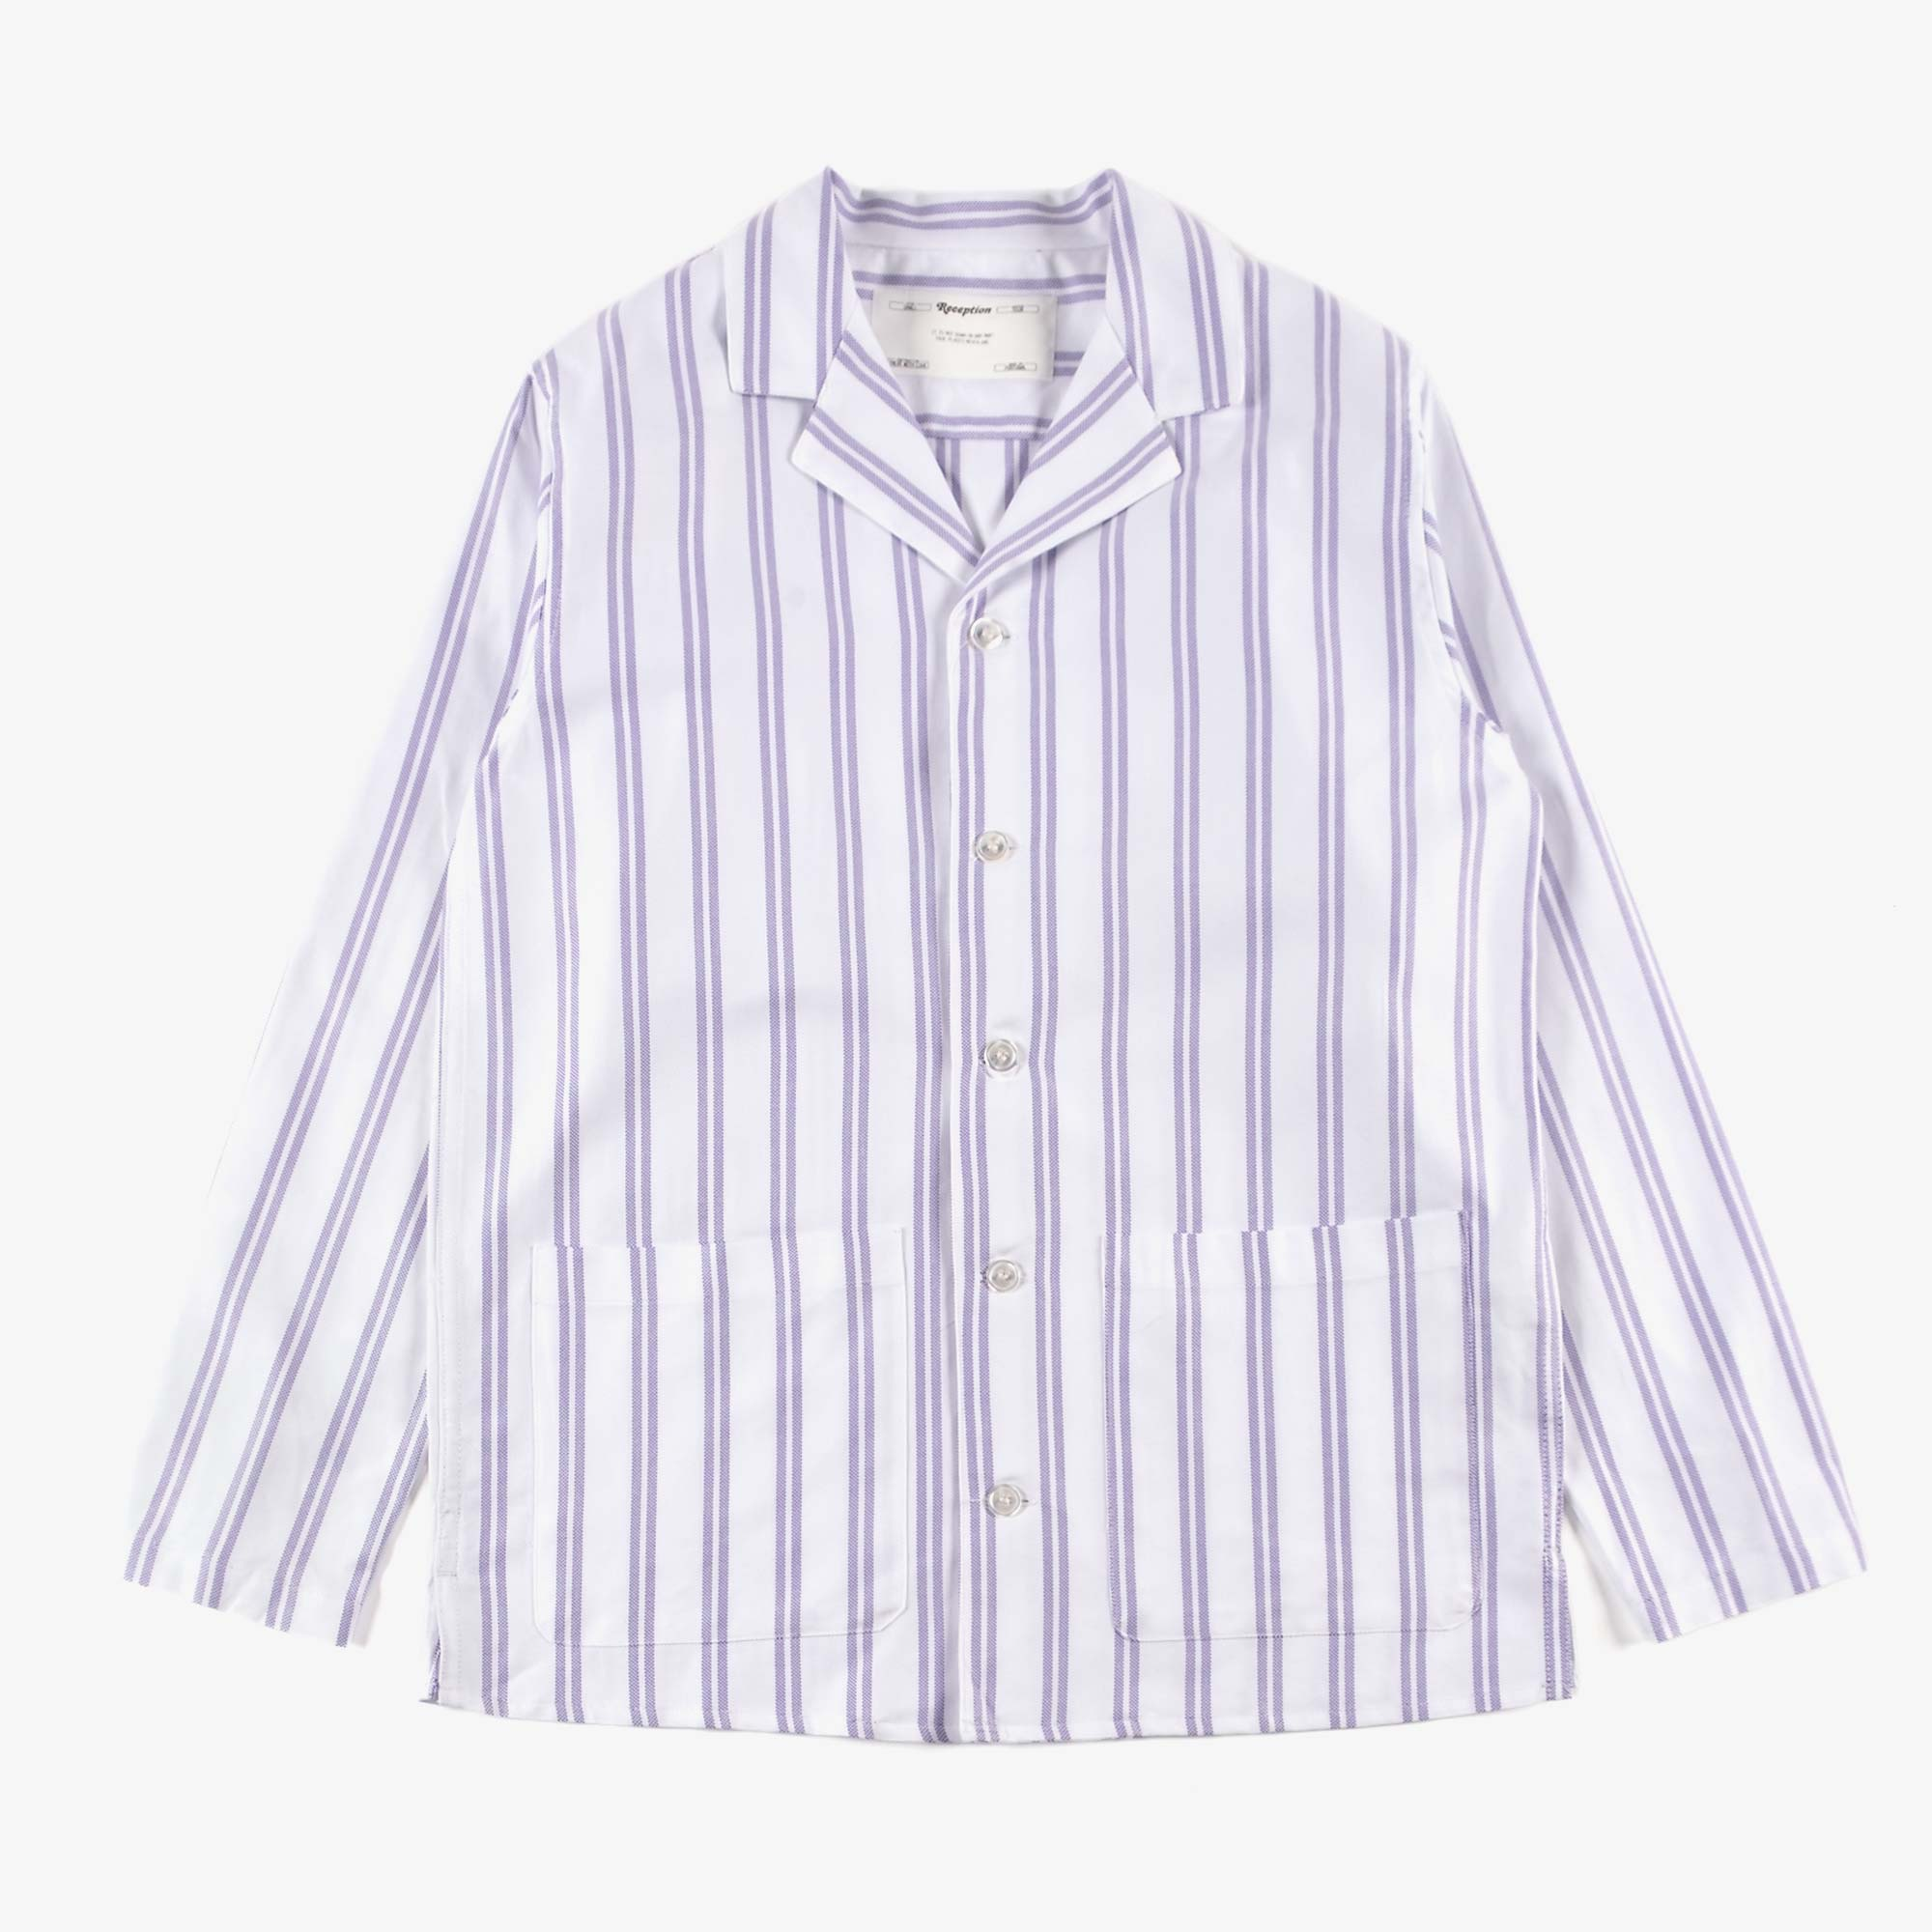 Reception Teba Shirt - White / Lavender 1